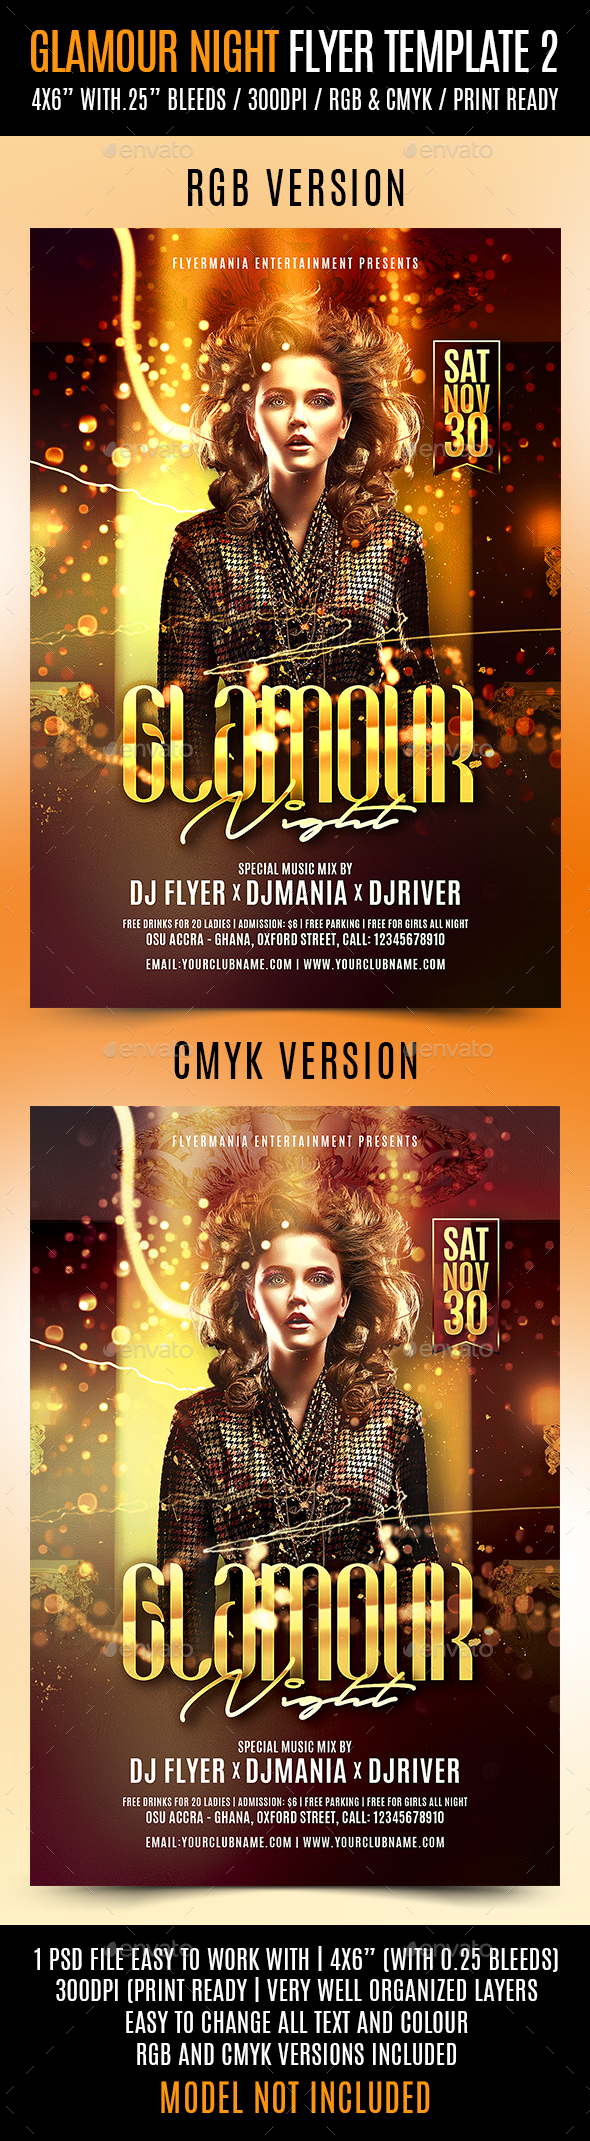 Glamour Night Flyer Template 2 - Clubs & Parties Events